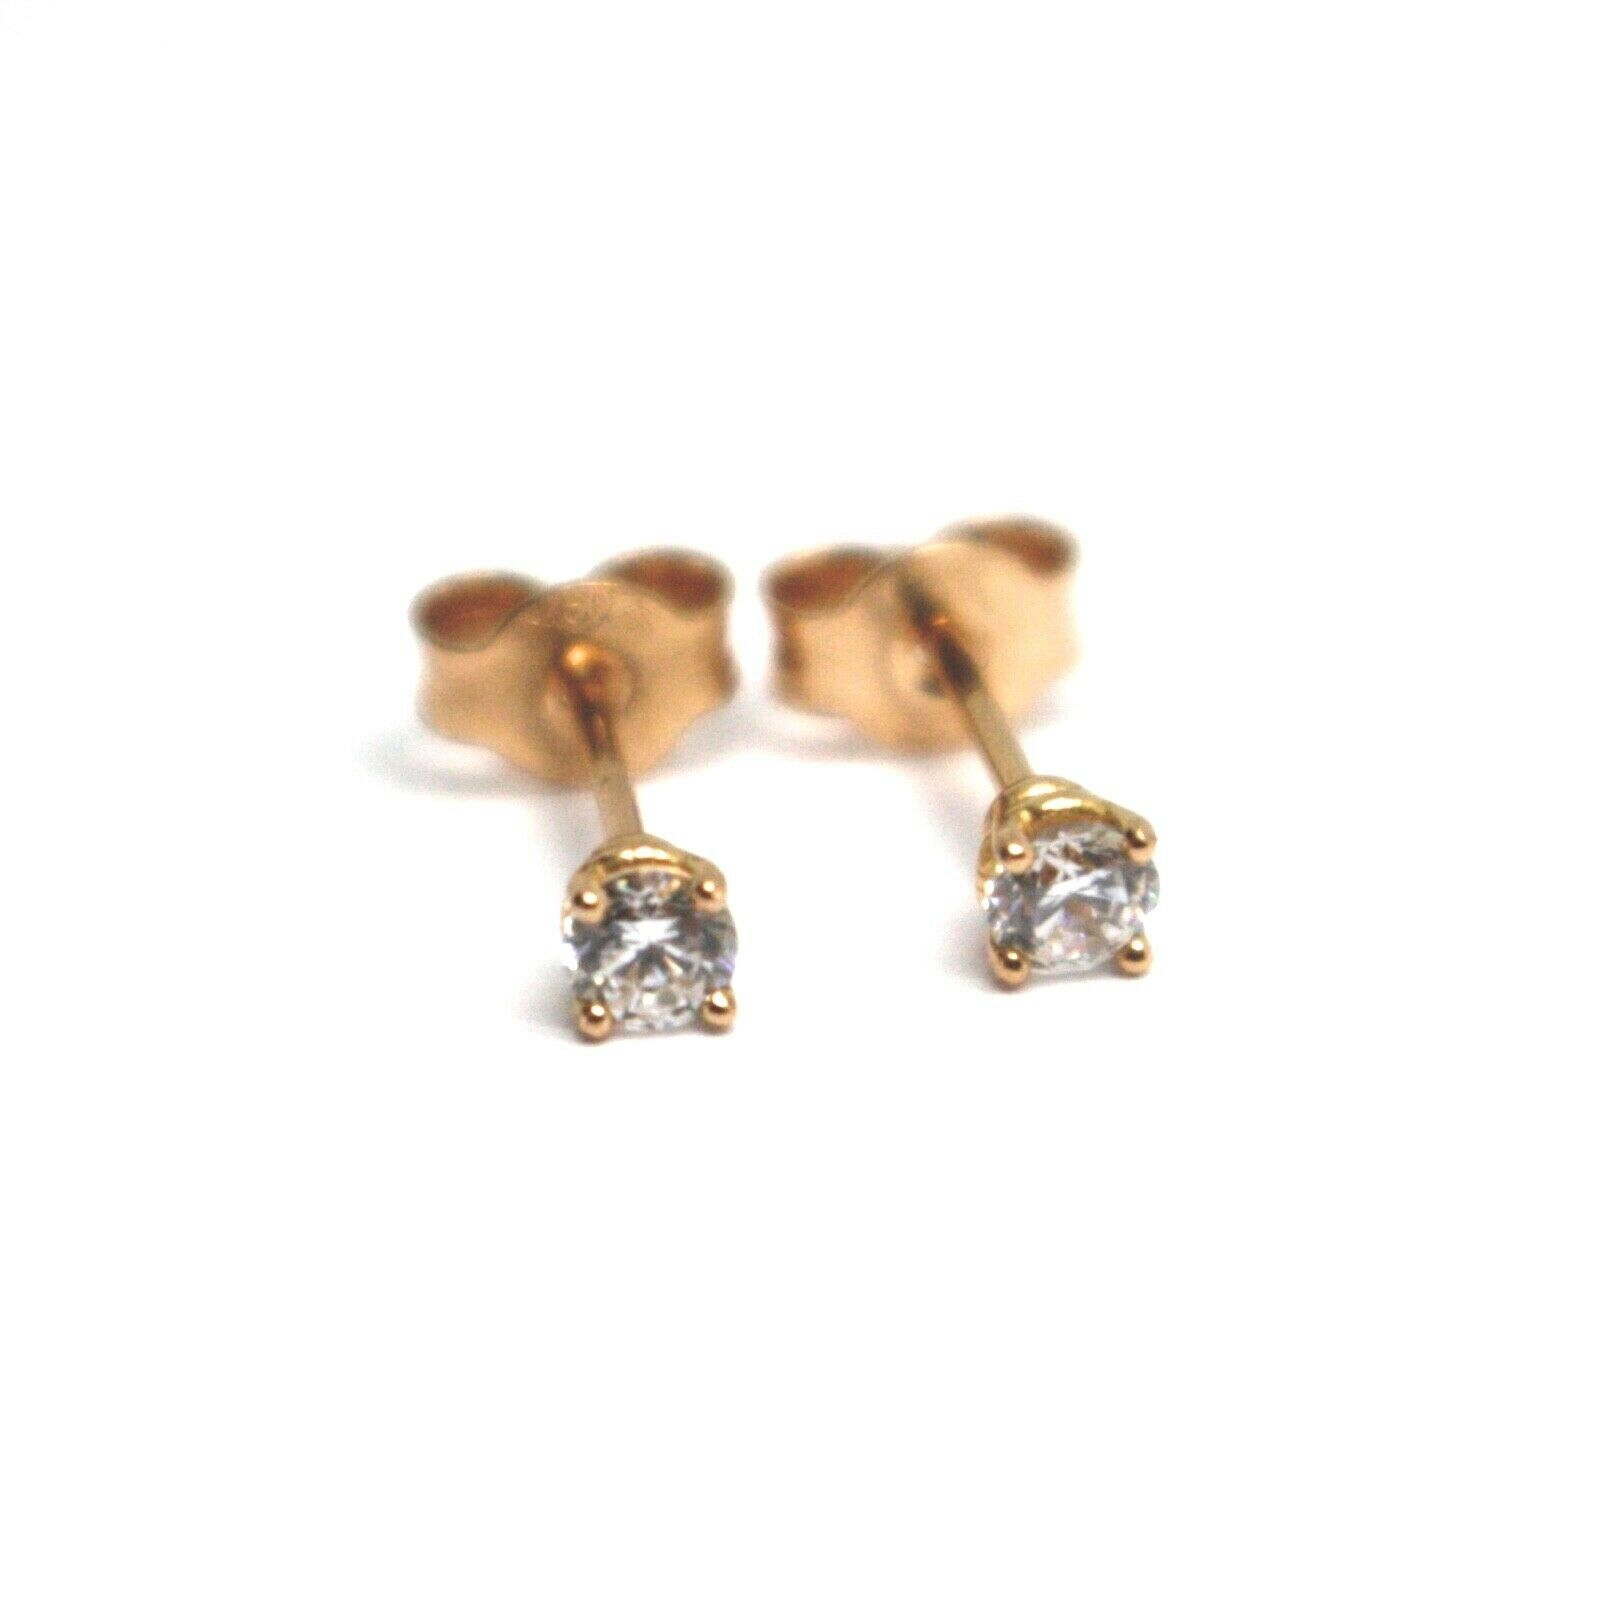 18K ROSE GOLD MINI BUTTON EARRINGS WITH WHITE CUBIC ZIRCONIA, DIAMETER 3mm 0.12""